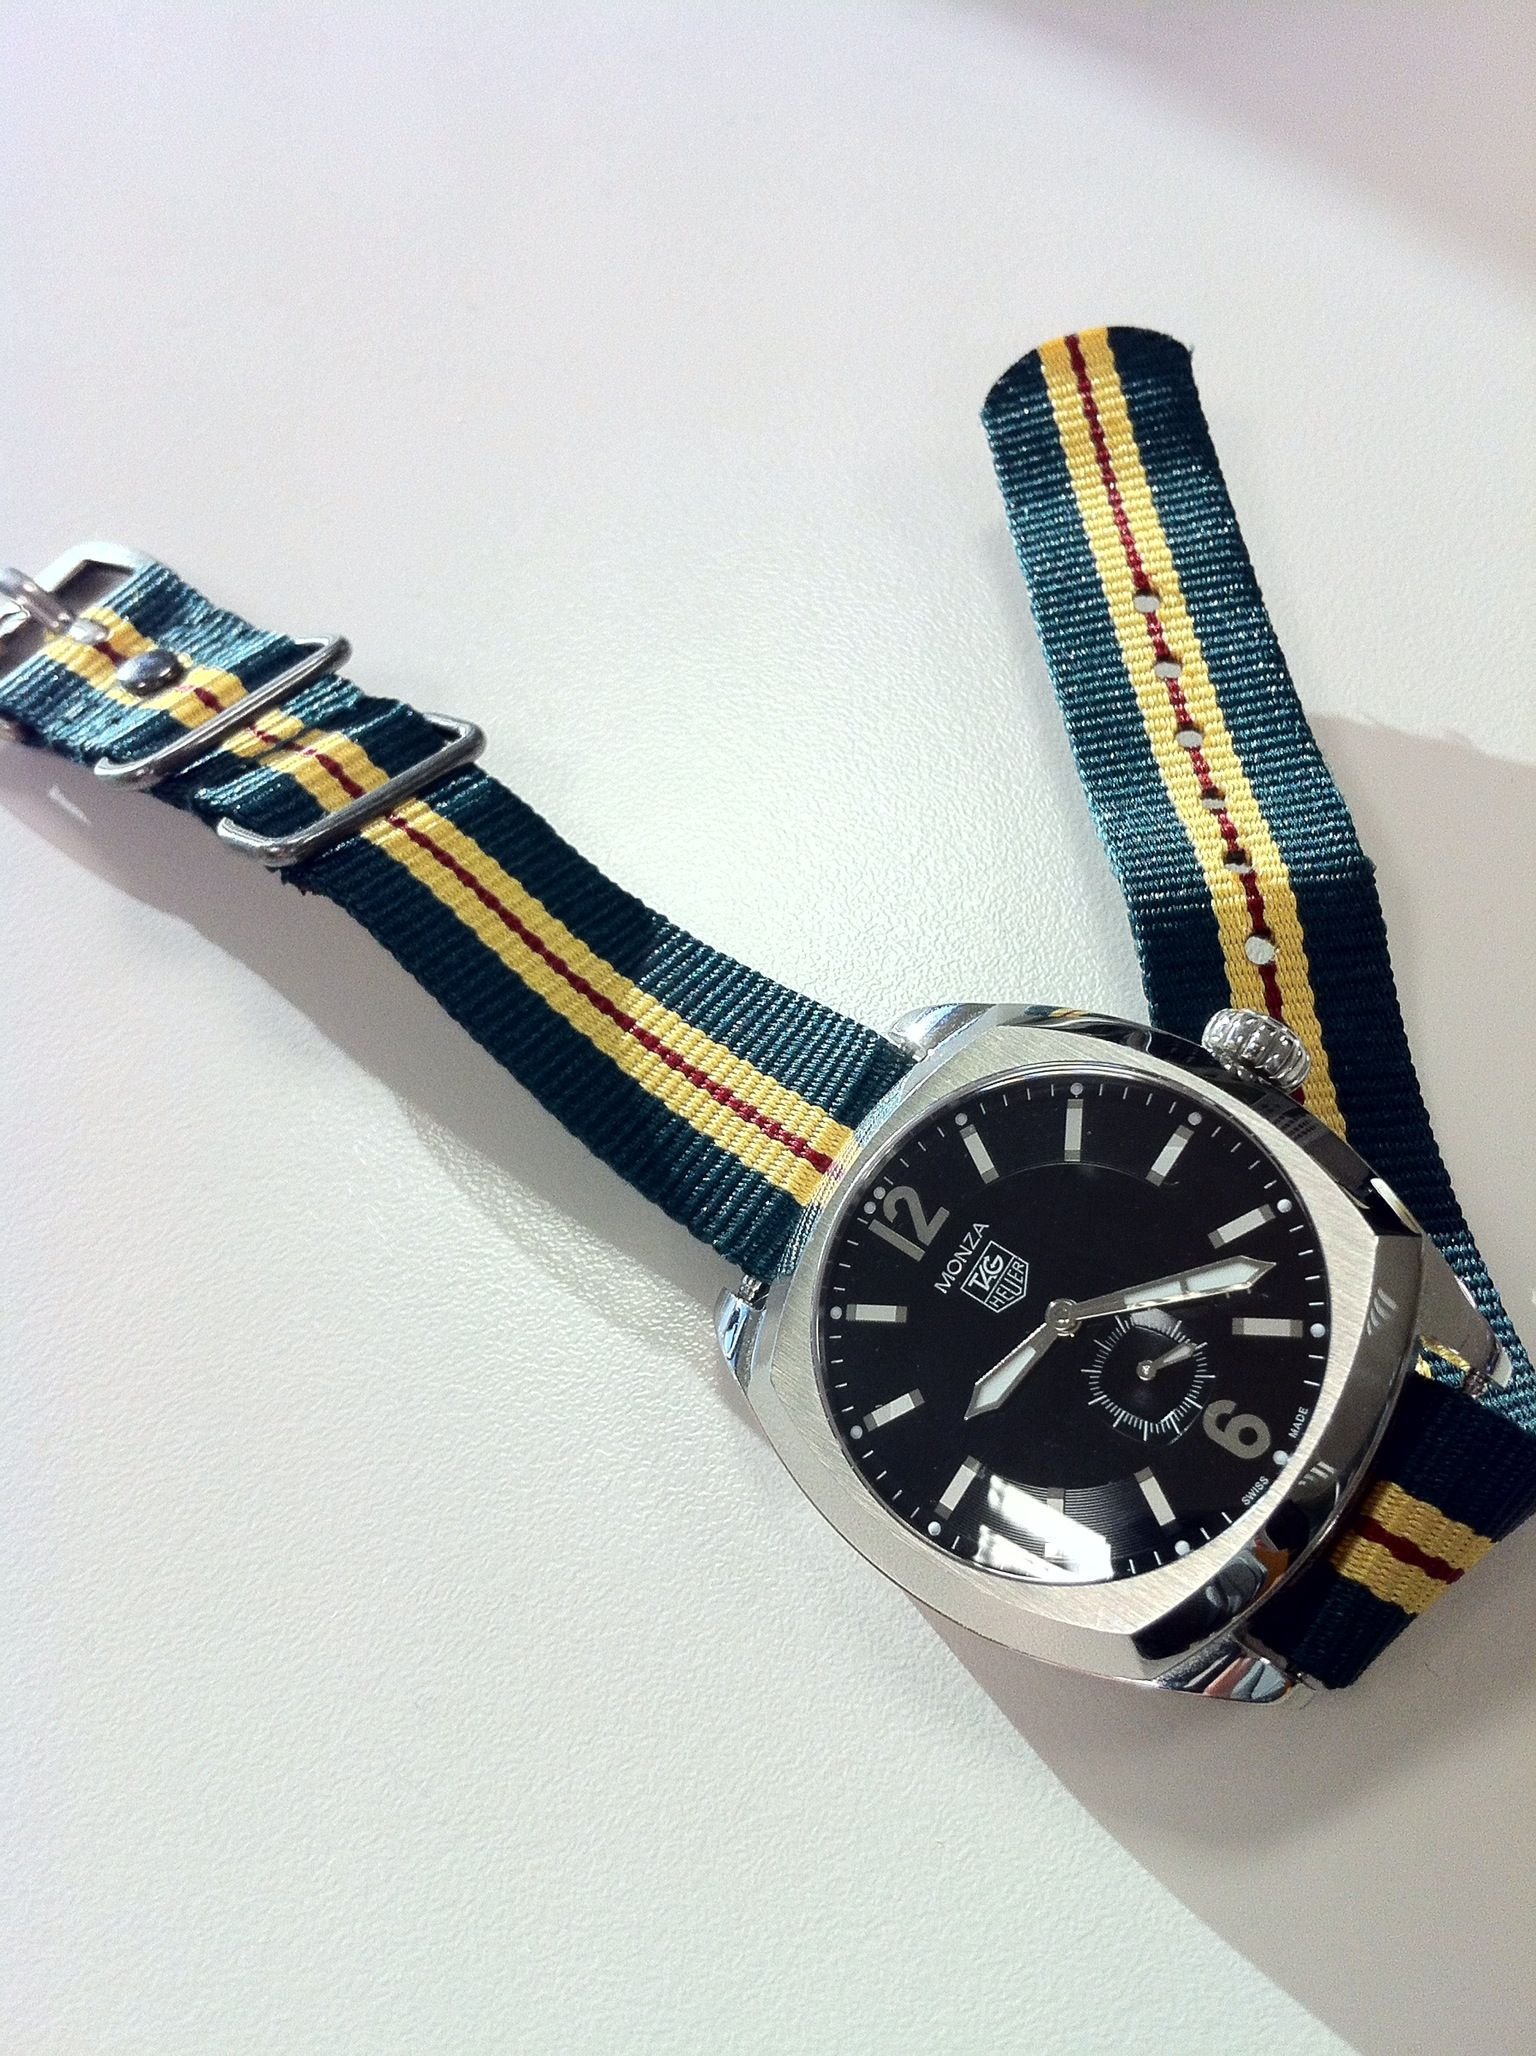 TAG - Heuer Monza automatic watch with NATO strap from ...